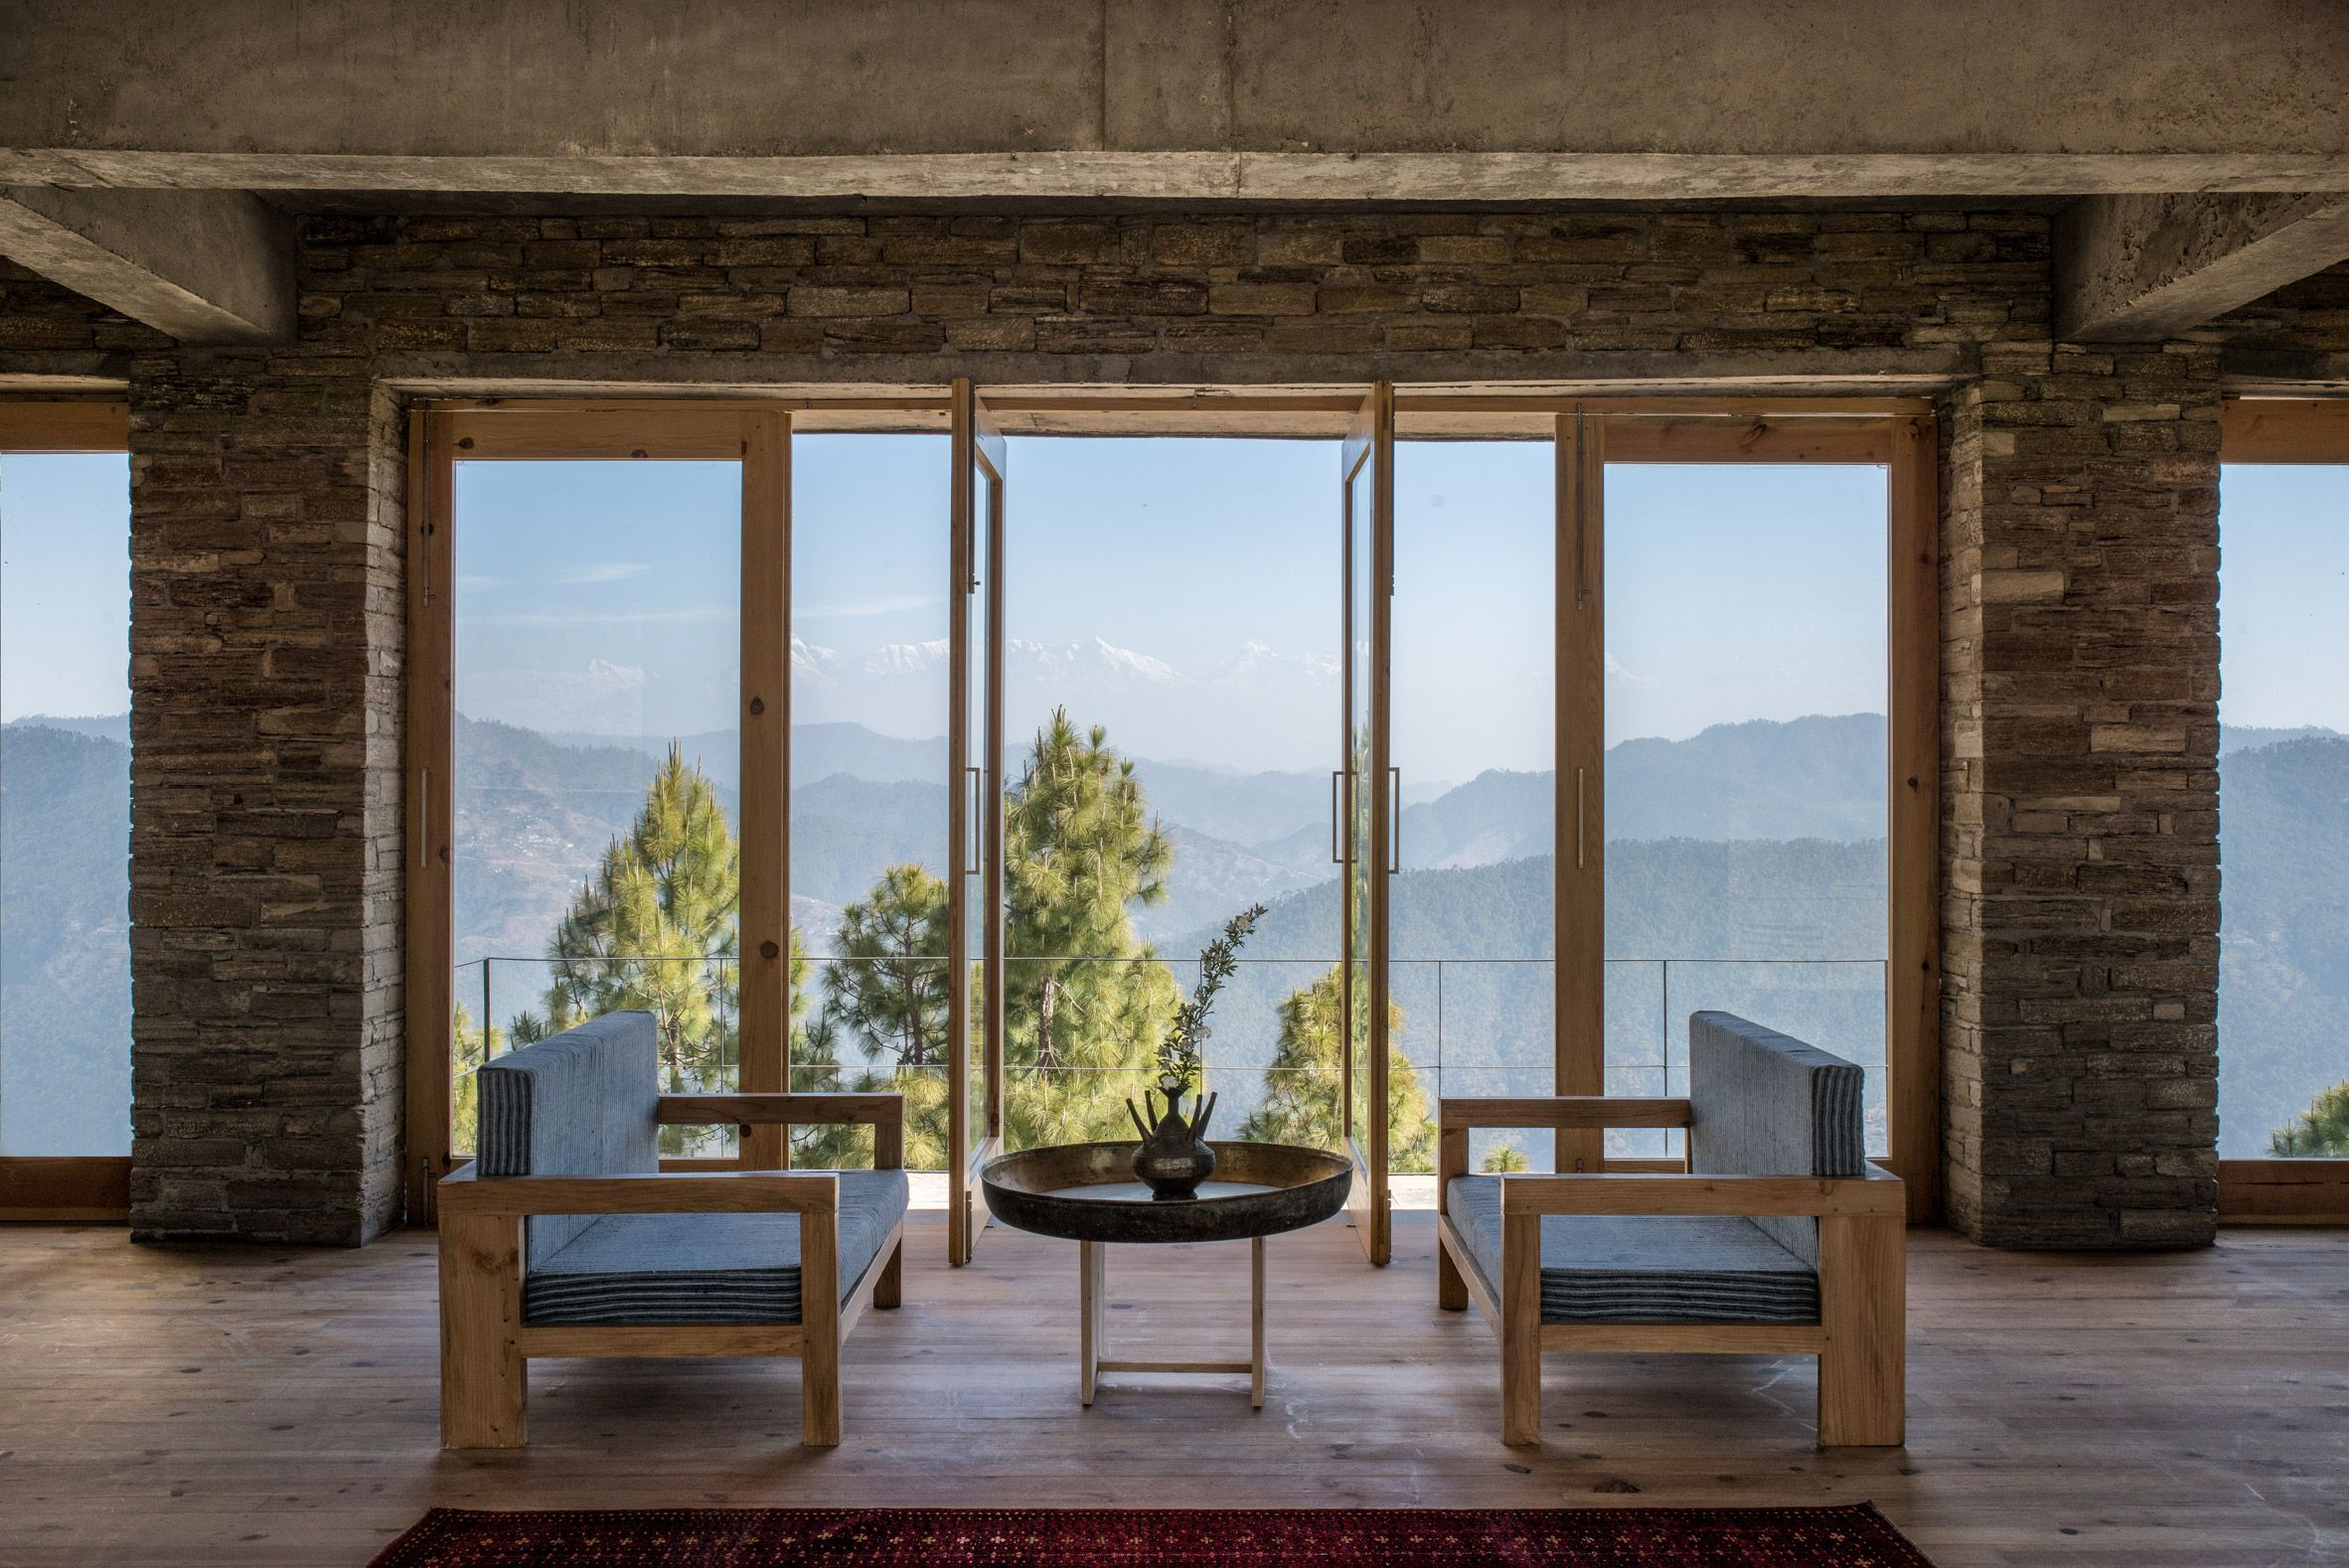 Kumaon Hotel Zowa Architecture Hotels India Mountains Dezeen 2364 Col 5